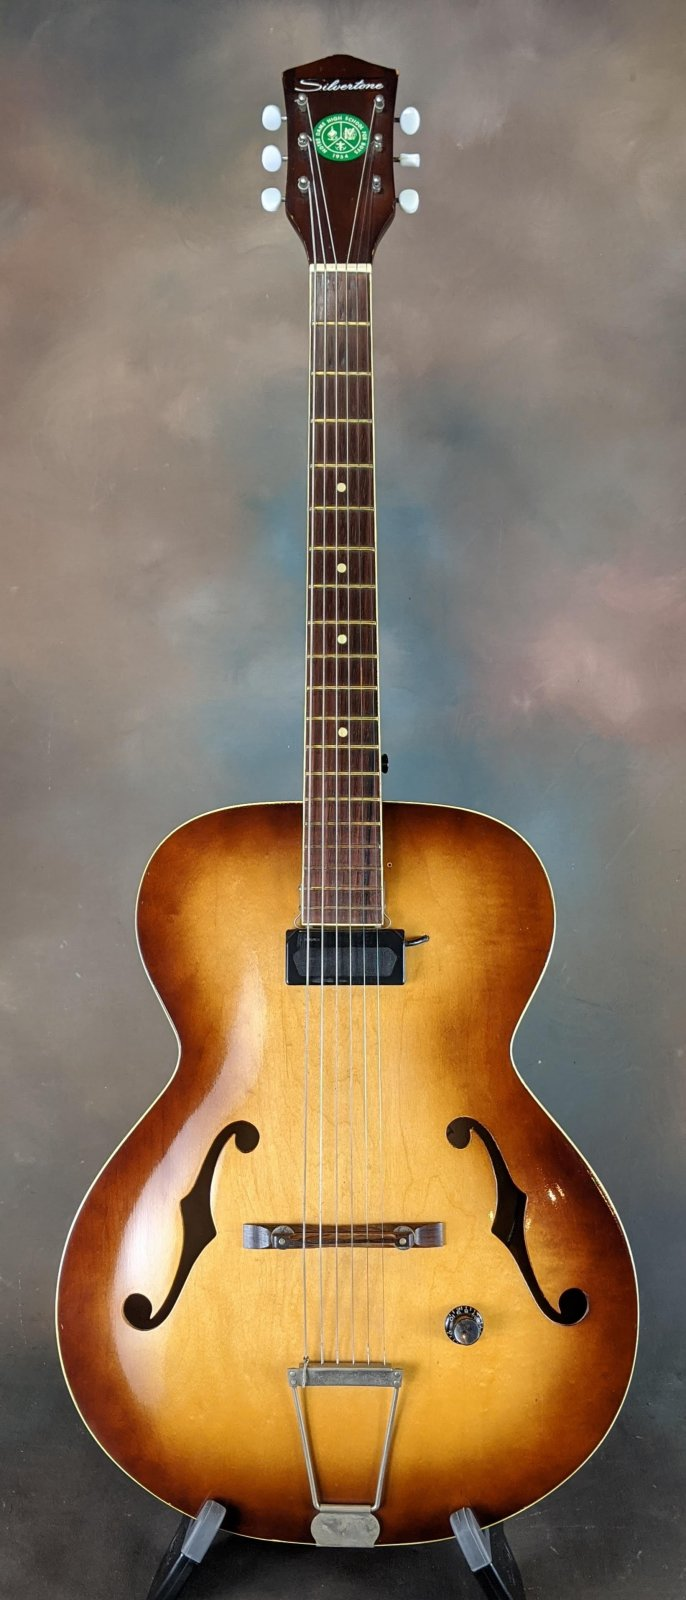 '60s Silvertone N-4 Archtop